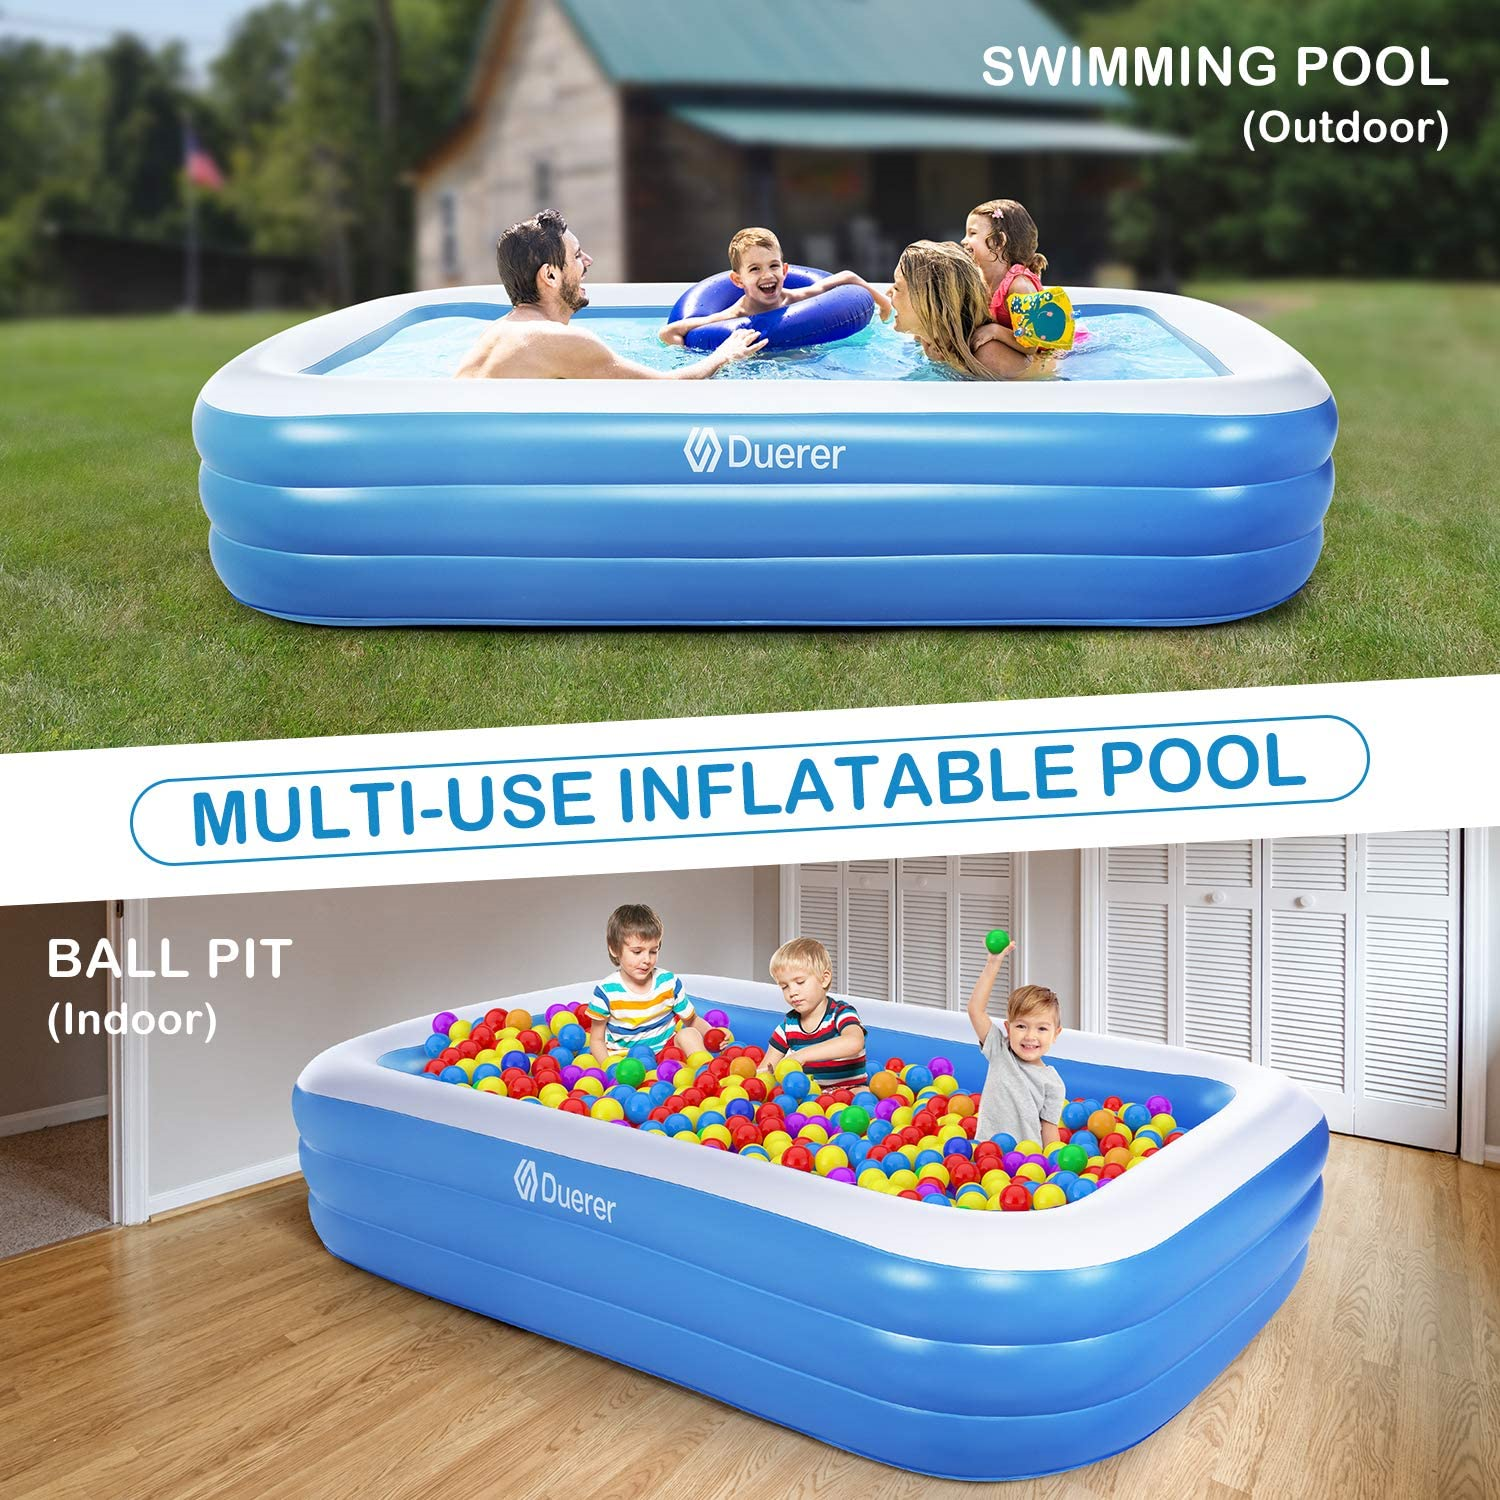 Duerer Inflatable Swimming Pools, Inflatable Pools, Full-Sized Family Blow up -